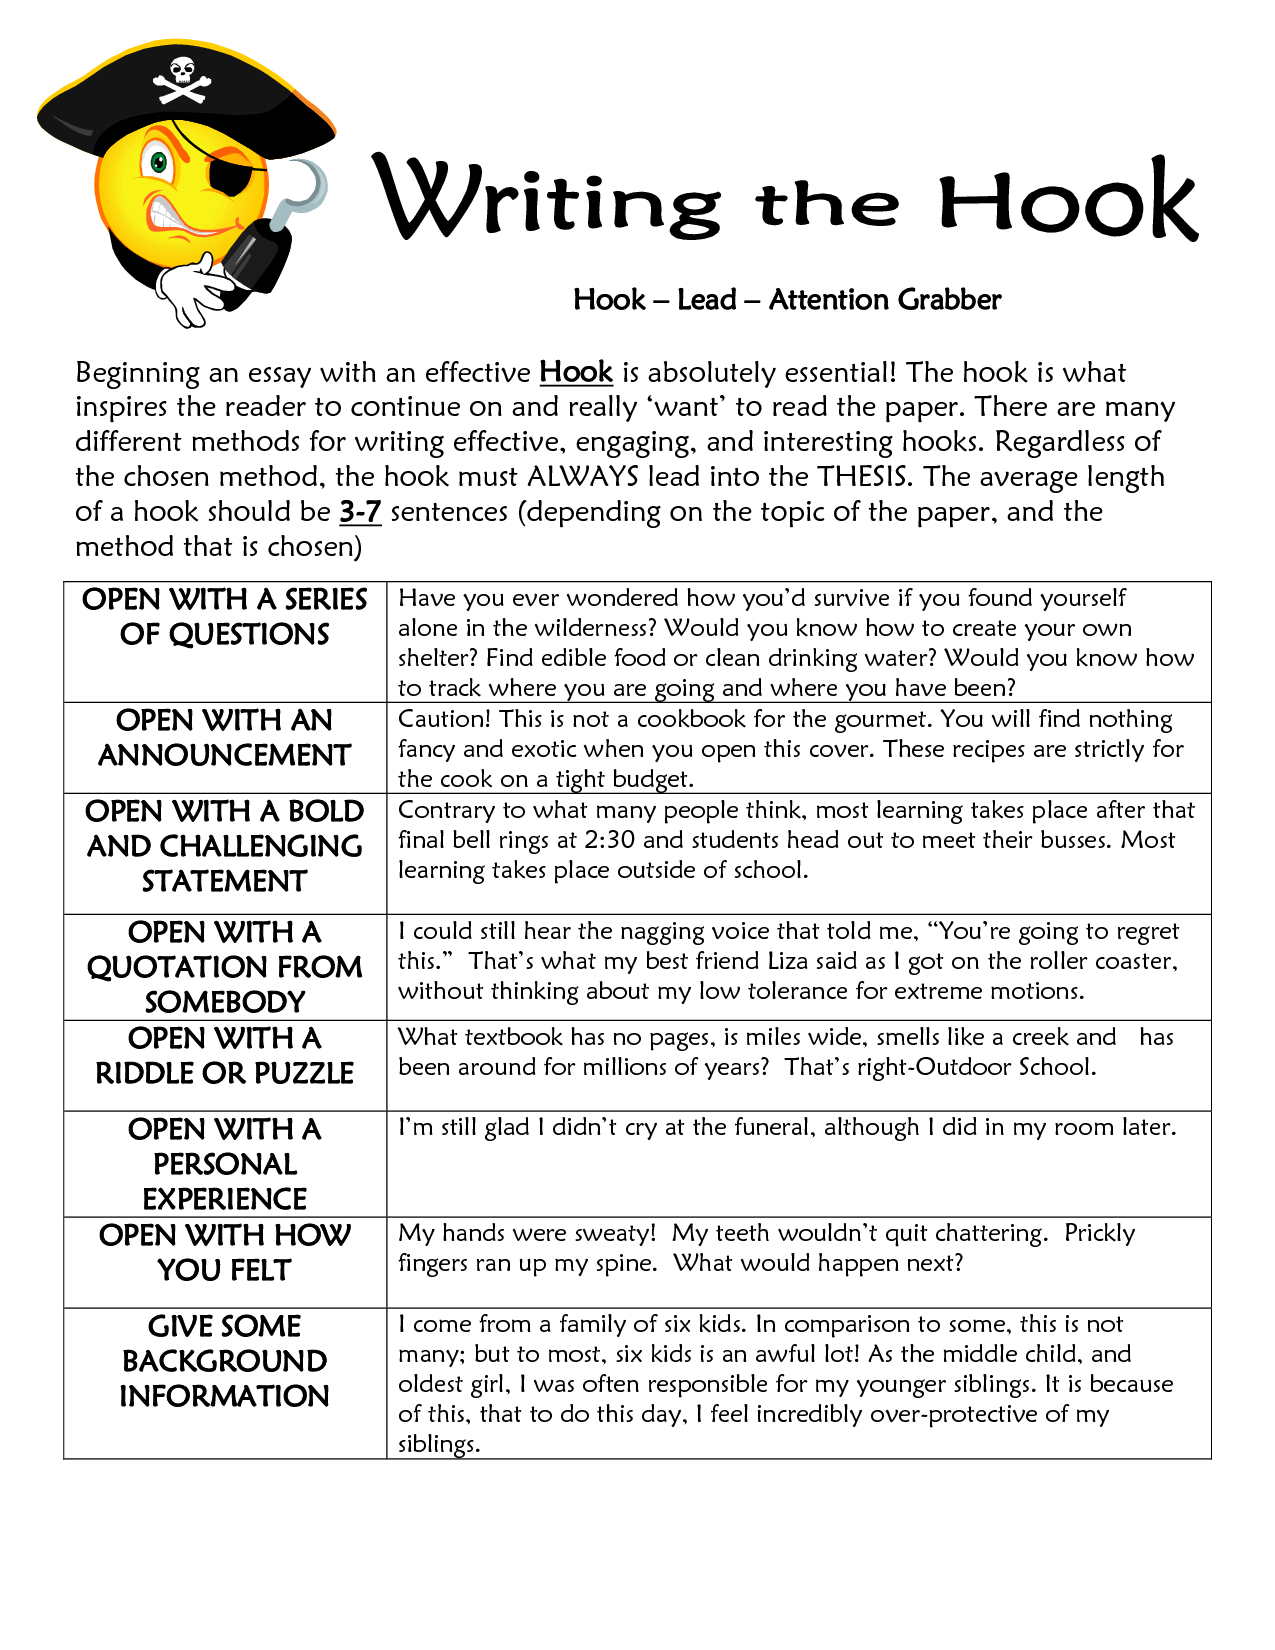 Examples of essay hooks hook c lead c attention grabber examples of essay hooks hook c lead c attention grabber beginning an essay with an madrichimfo Choice Image